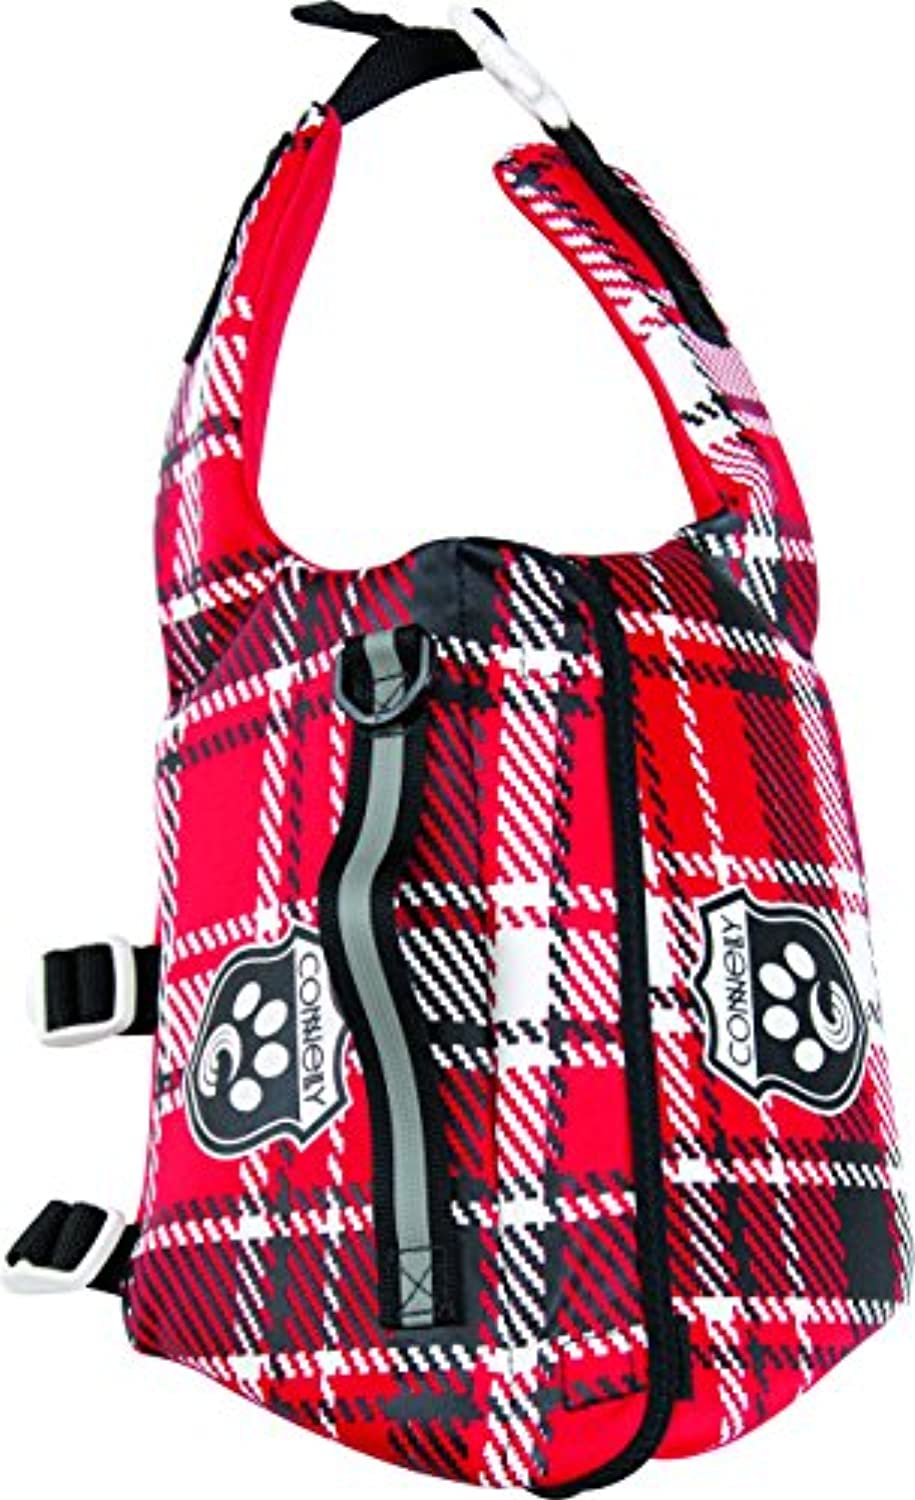 Connelly Skis Rover Dog Neoprene Vest, Medium by CWB